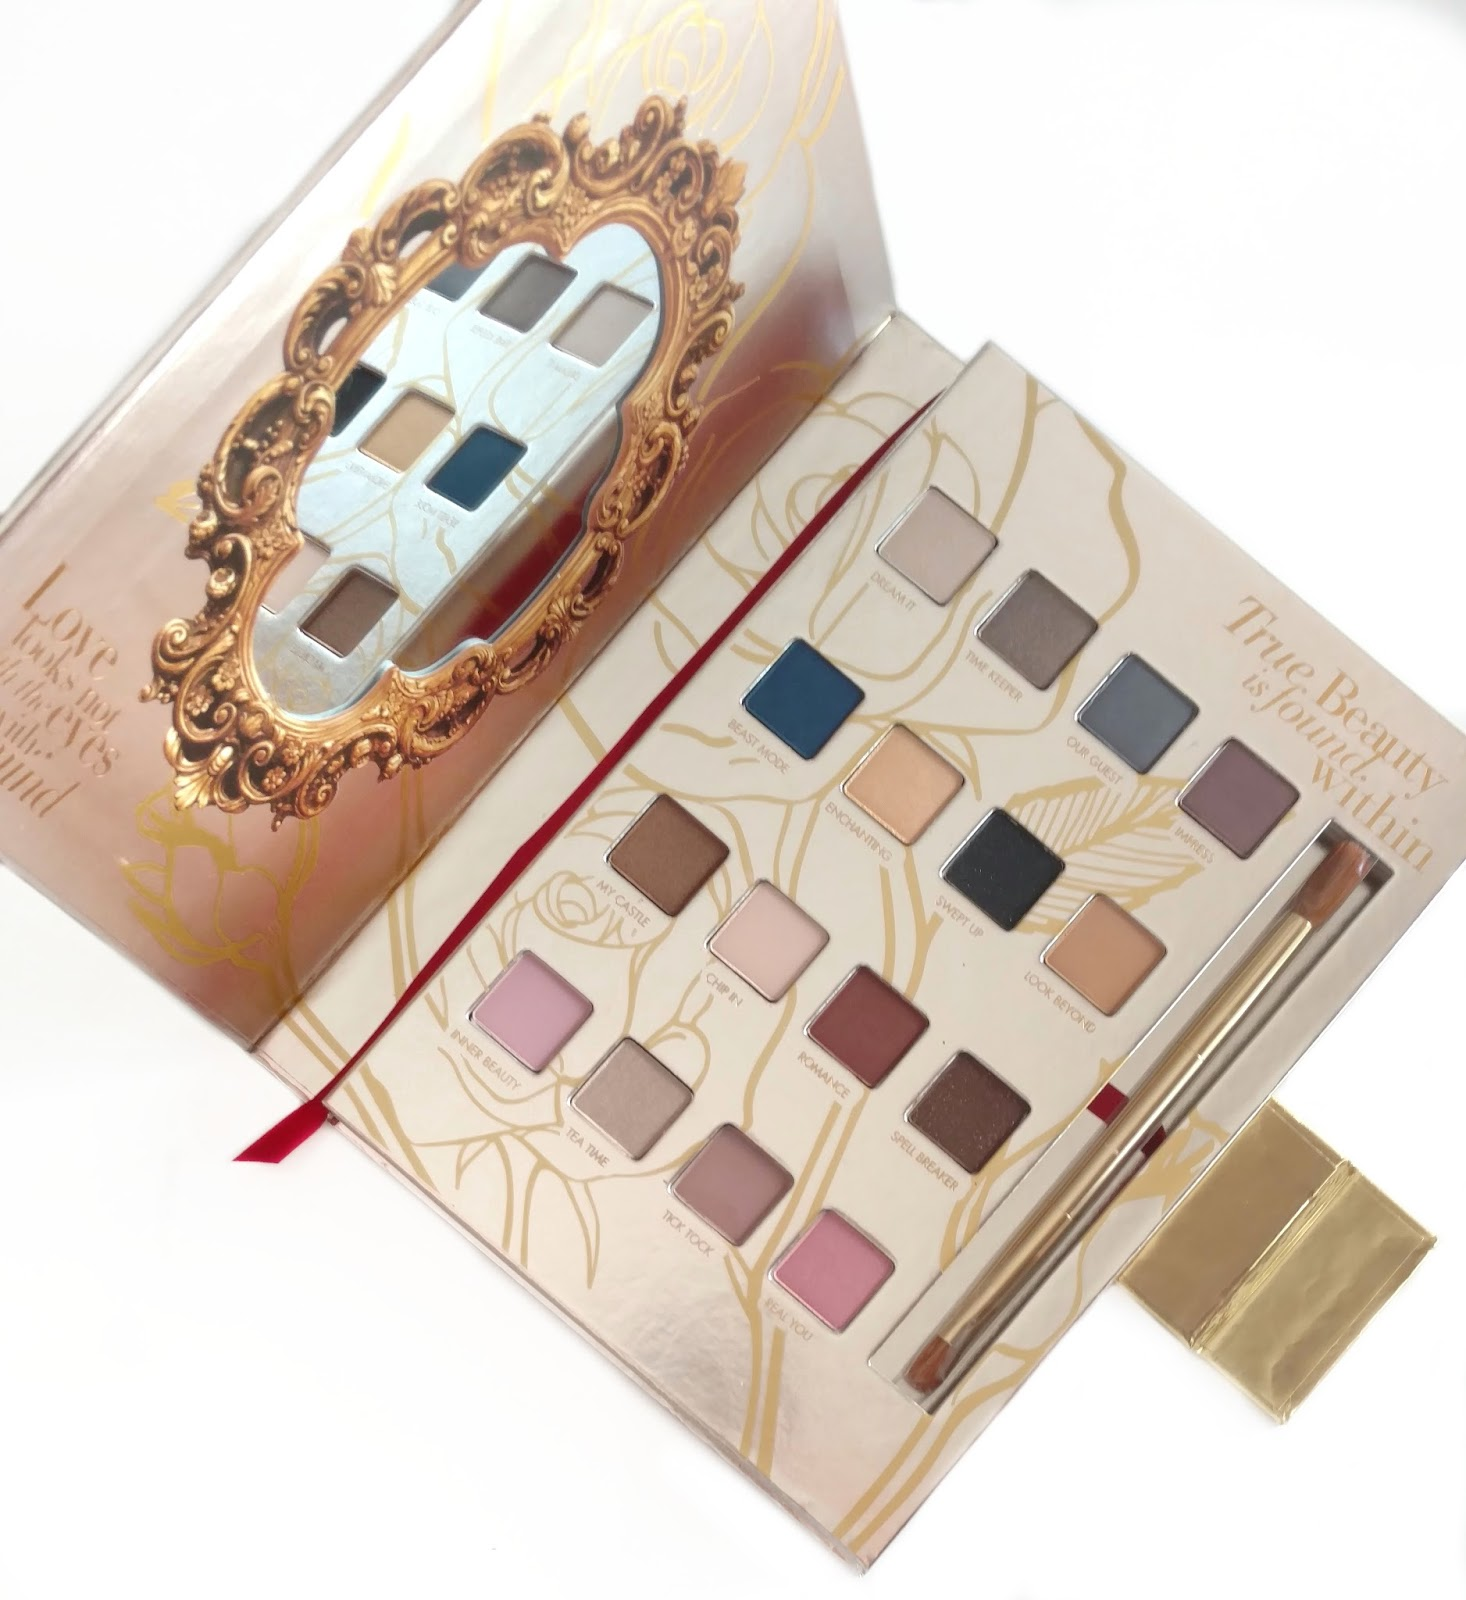 Lorac Beauty and the Beast PRO Eyeshadow Palette Review